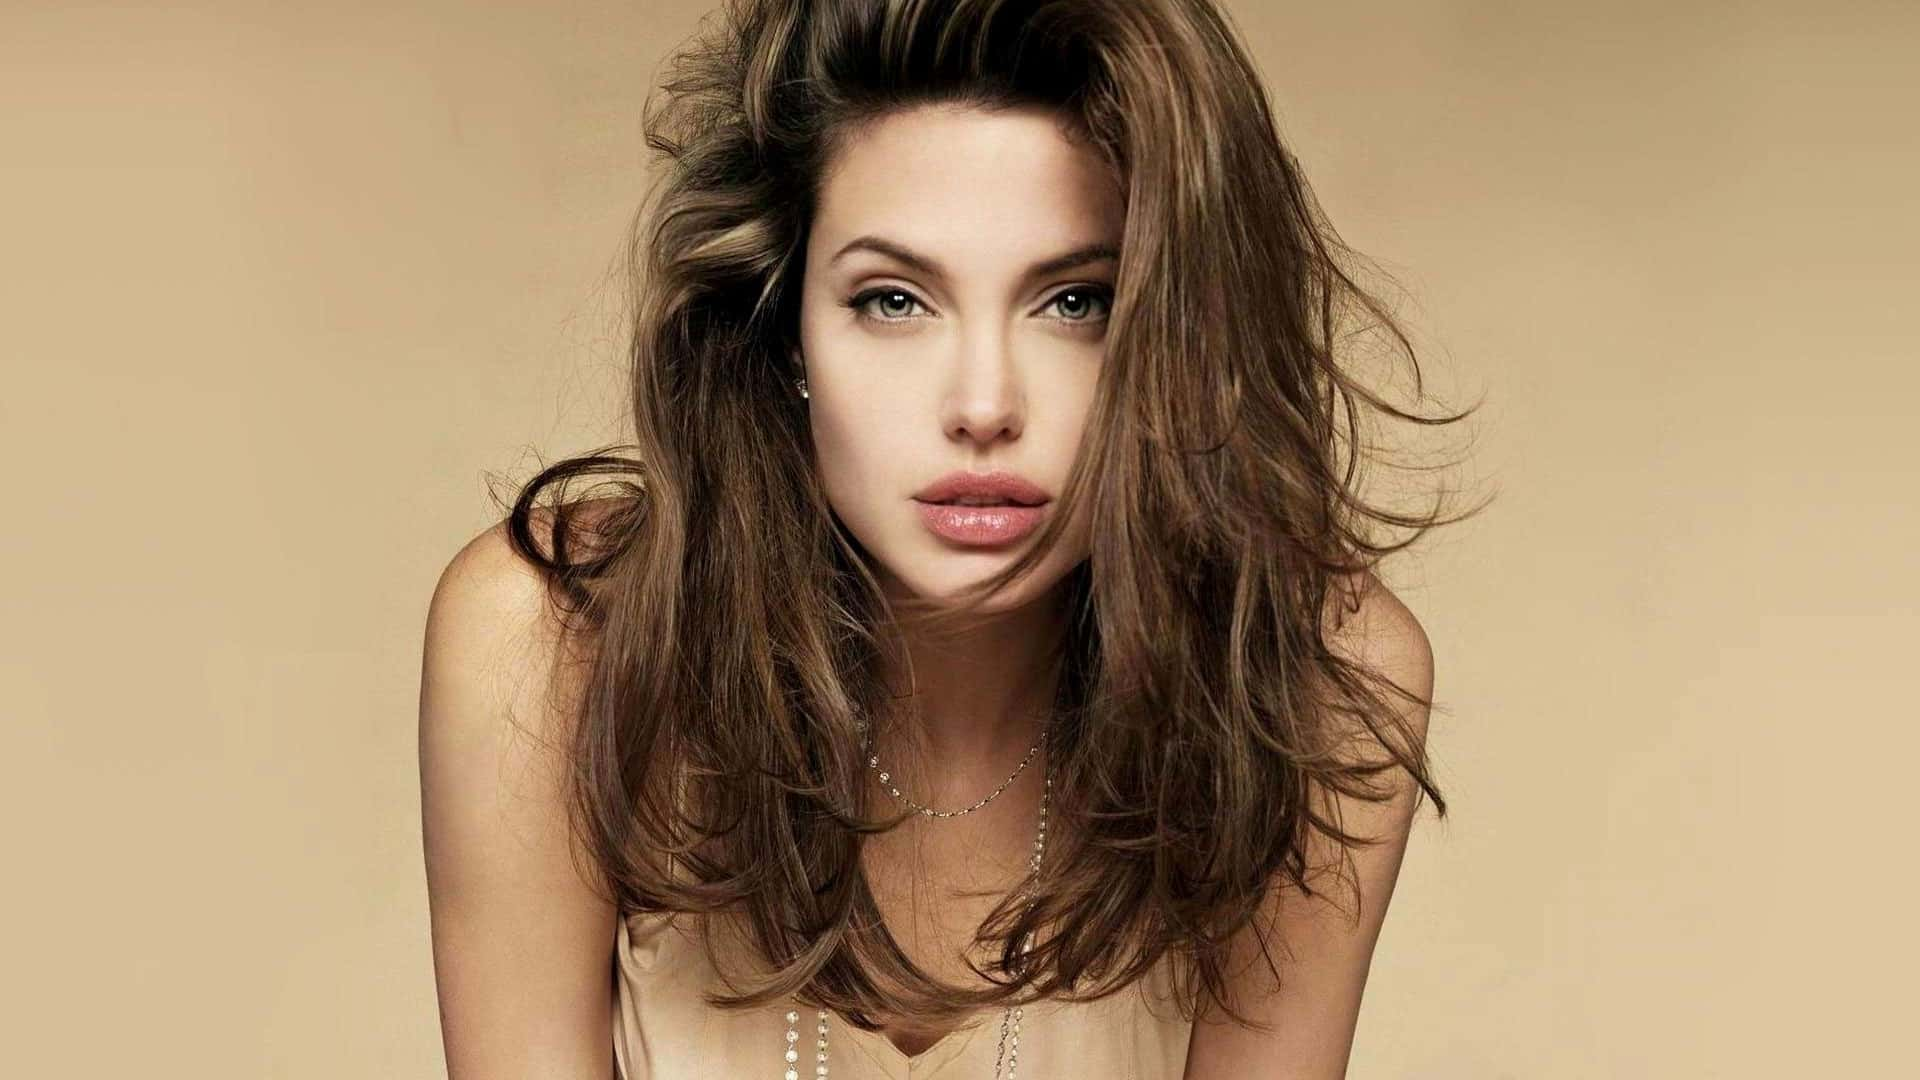 Angelina Jolie American, Cambodian citizen Actress, filmmaker, director, social activist and philanthropist